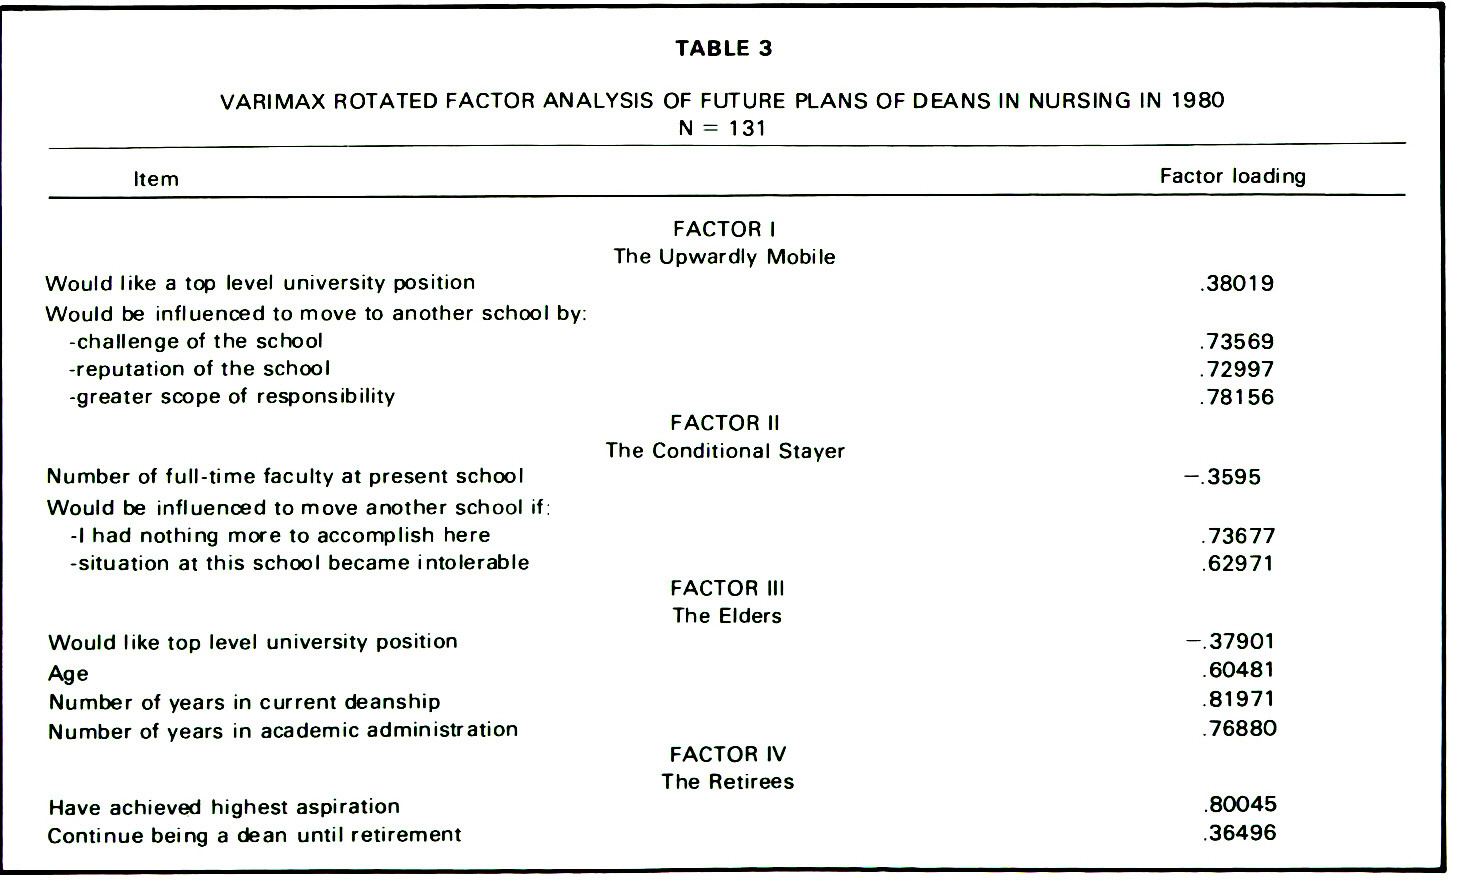 TABLE 3VARIMAX ROTATED FACTOR ANALYSIS OF FUTURE PLANS OF DEANS IN NURSING IN 1980 N = 131